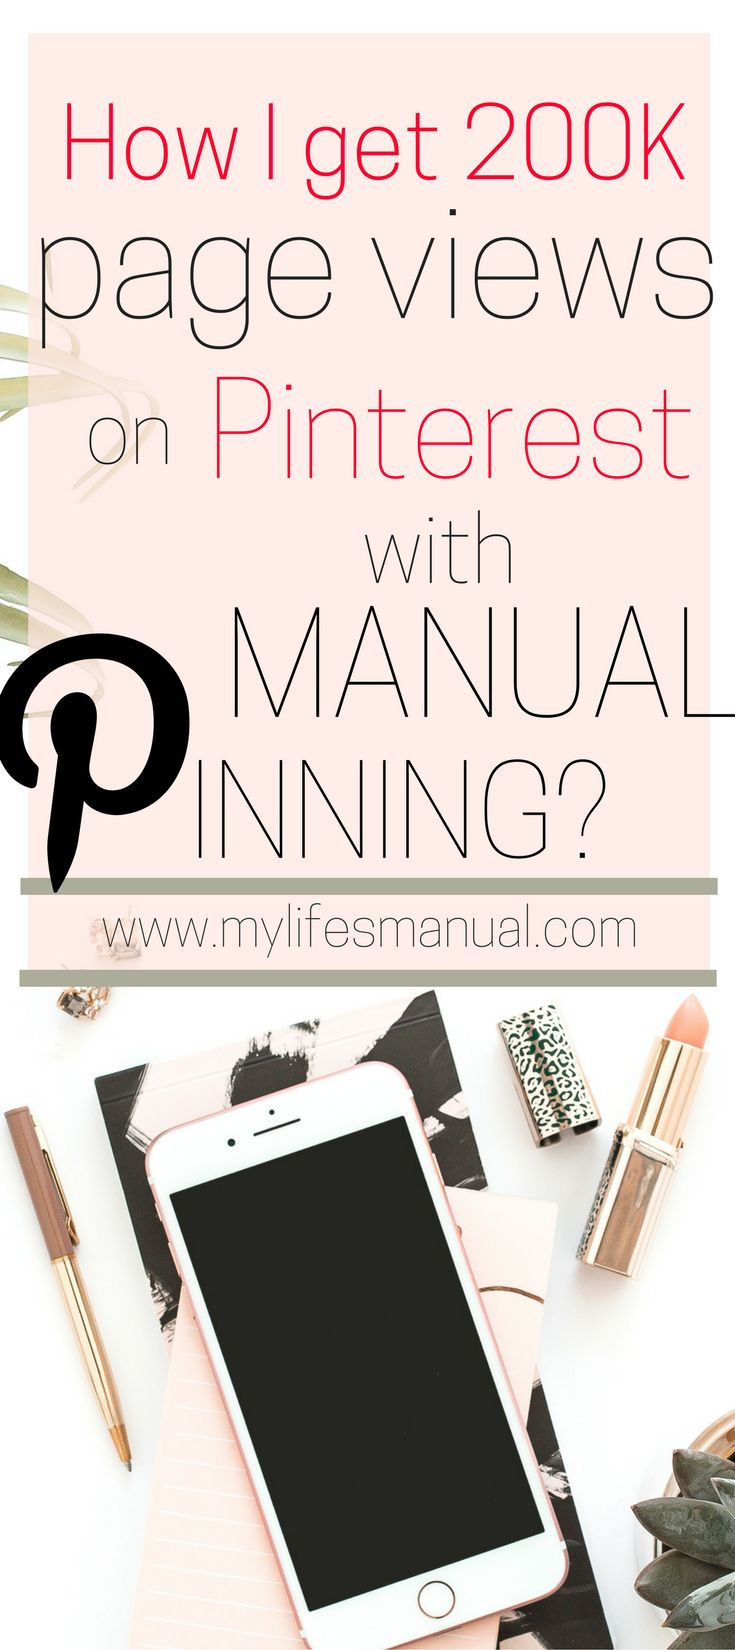 Increase your page views from 0-200K page views per month with manual pinning. If you are wondering if there is a manual pinning strategy to increase blog traffic from Pinterest without paying for a scheduler, This is the answer for you. Learn how to drive insane traffic to your blog without Tailwind or Boardbooster. #blogtraffic #Pinteresttips (affiliate link)